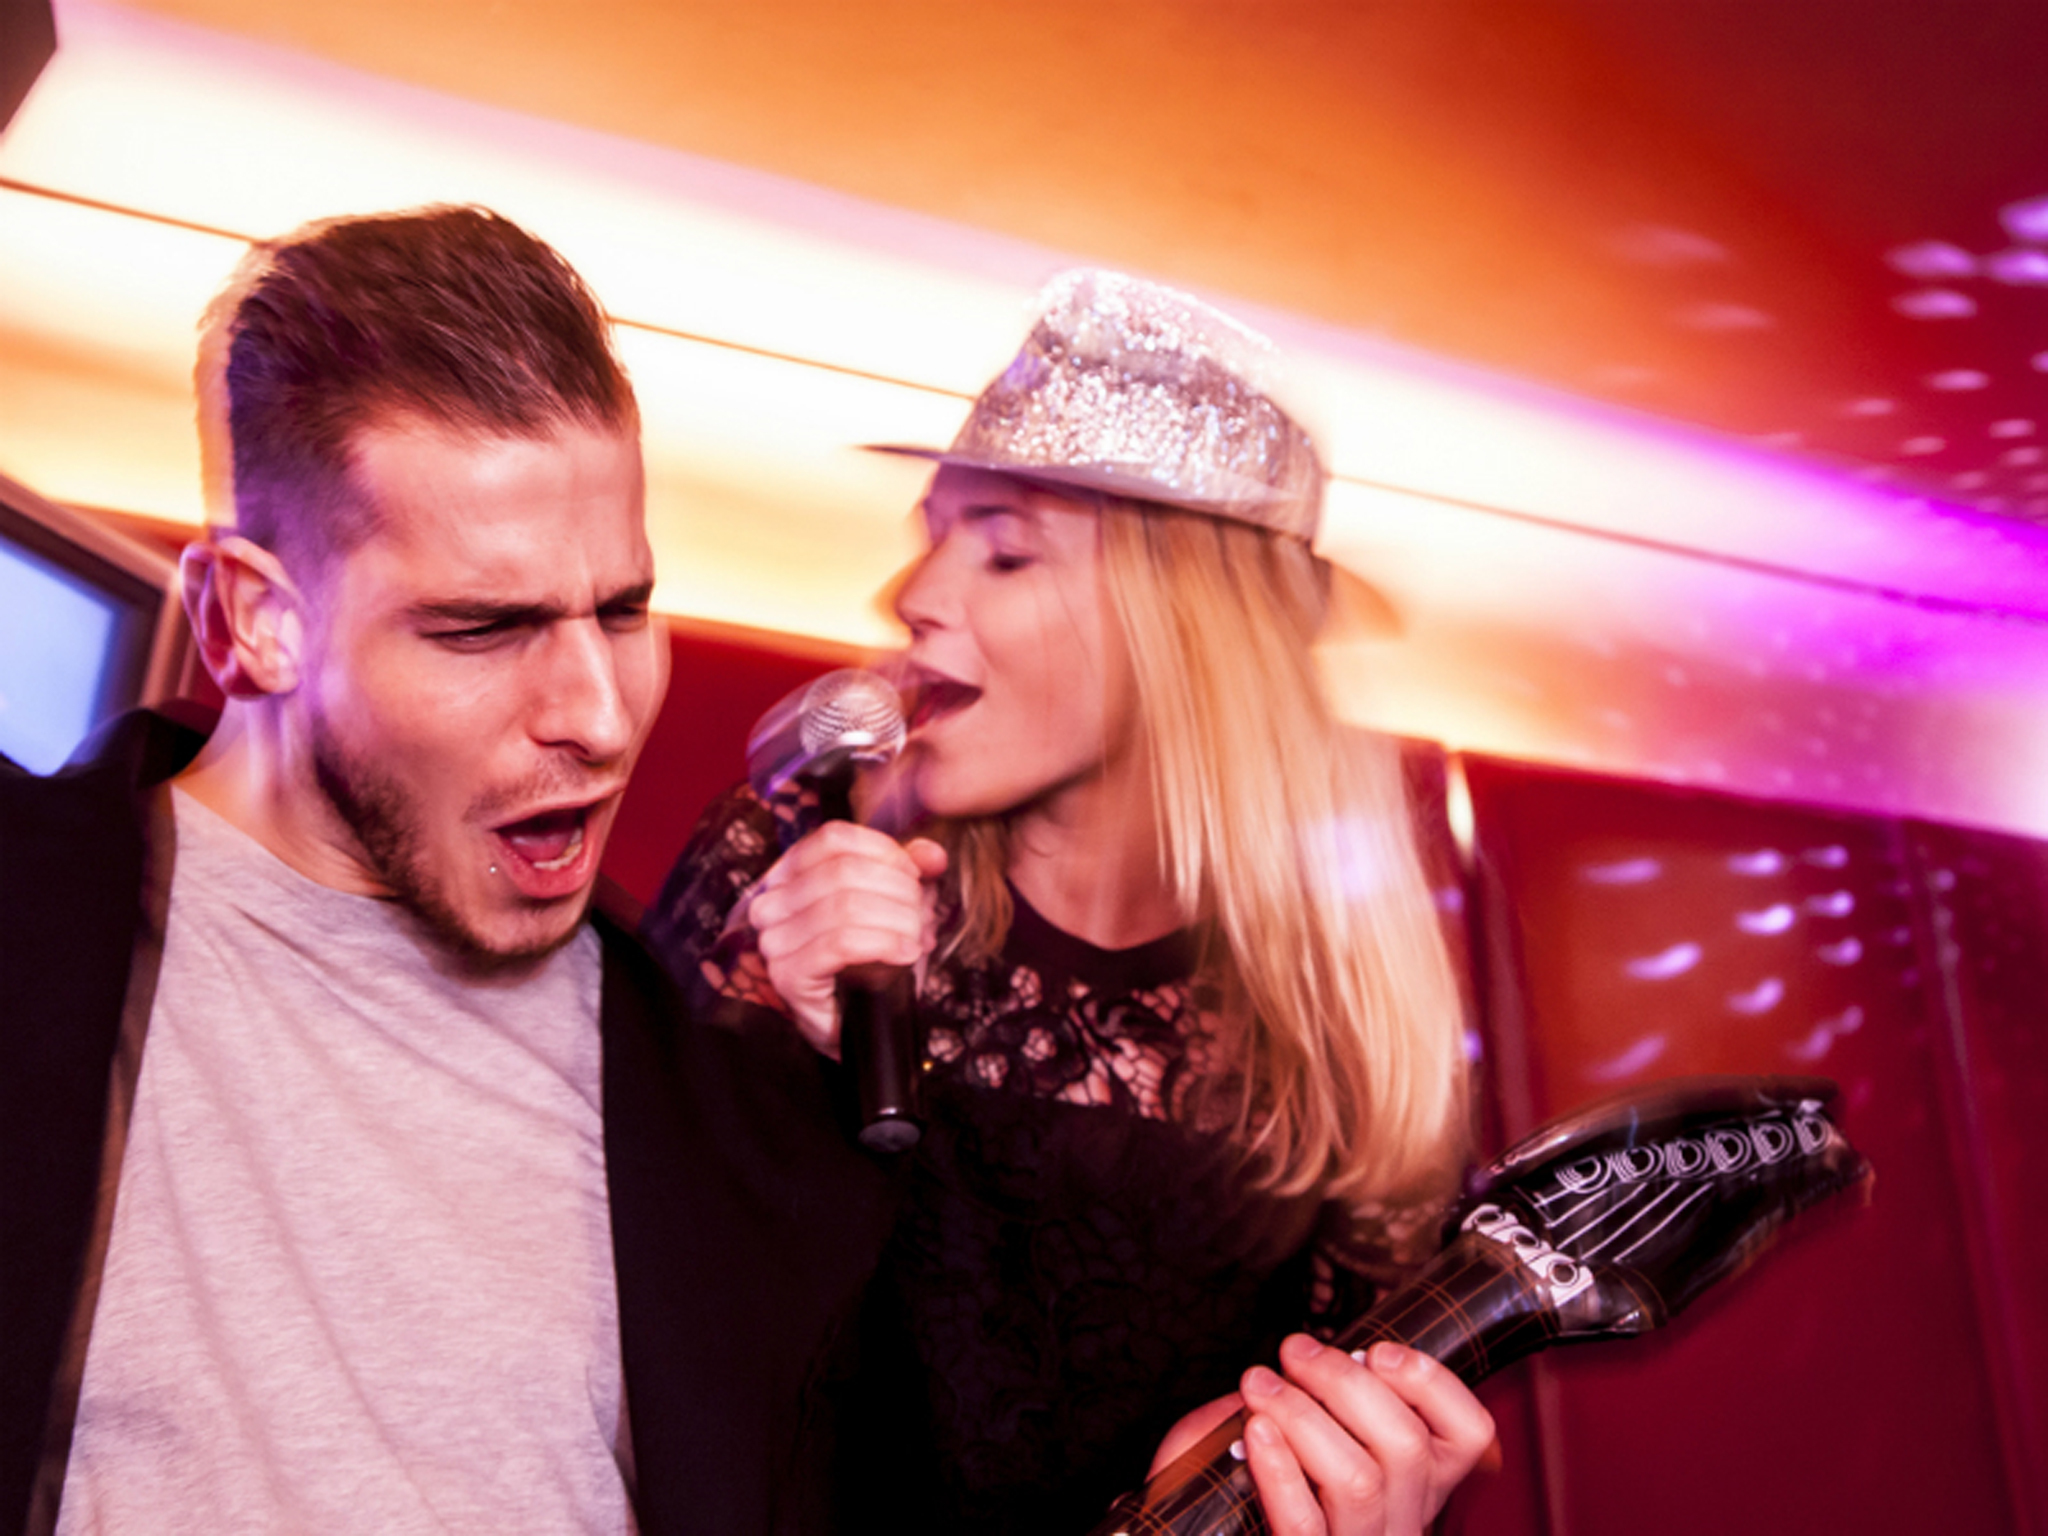 Late-night bars in London, karaoke